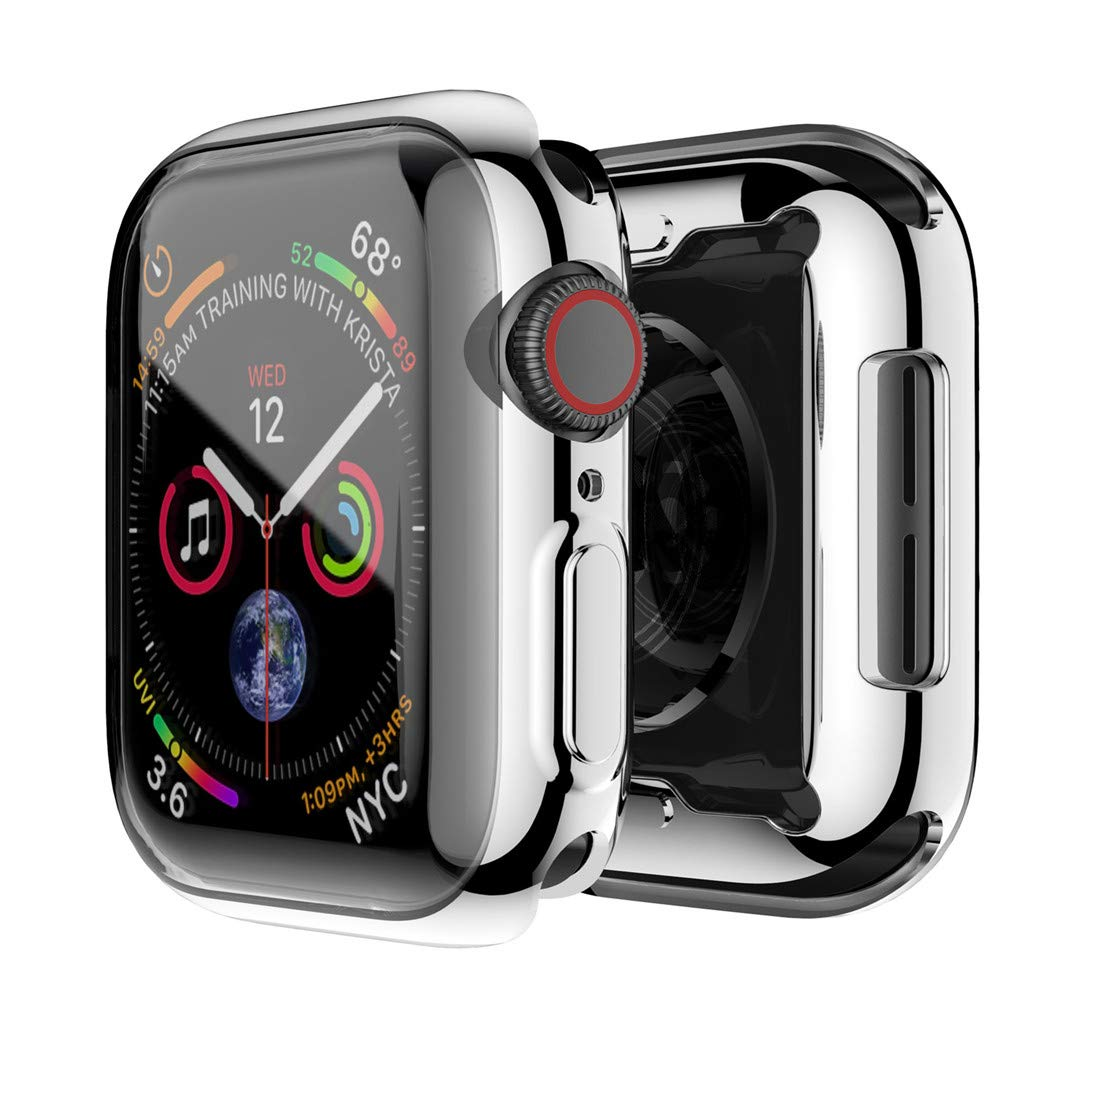 Hankn for Apple Watch Series 4 Case, Soft TPU 360° Full Around Smartwatch Screen Protectors Shockproof Protective Slim HD Bumper Cover for Apple ...